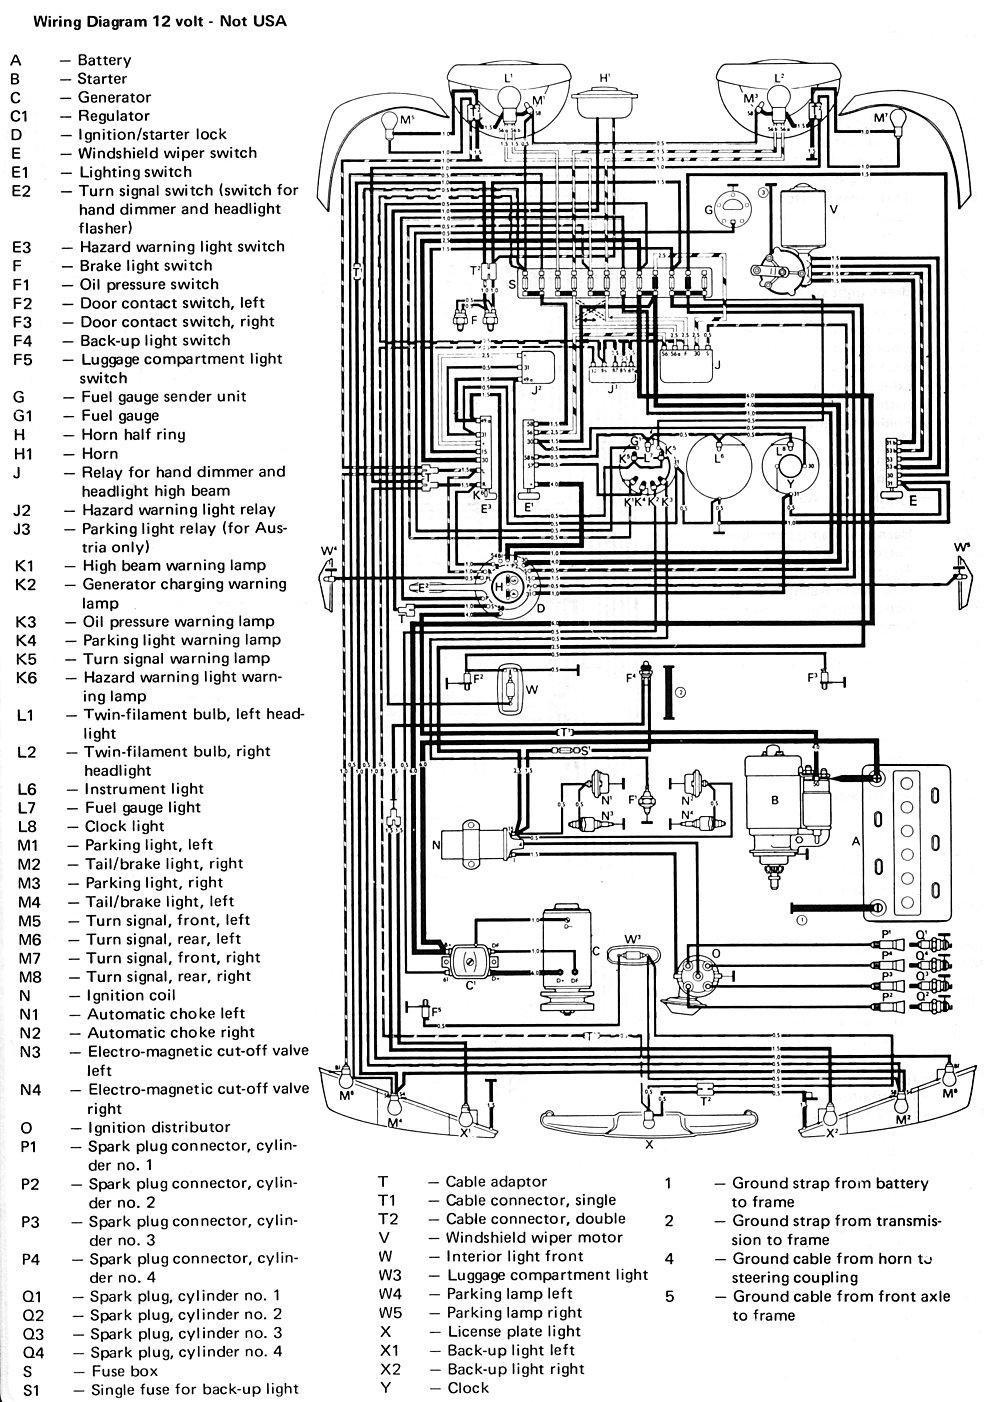 Vw Squareback Wiring Diagram